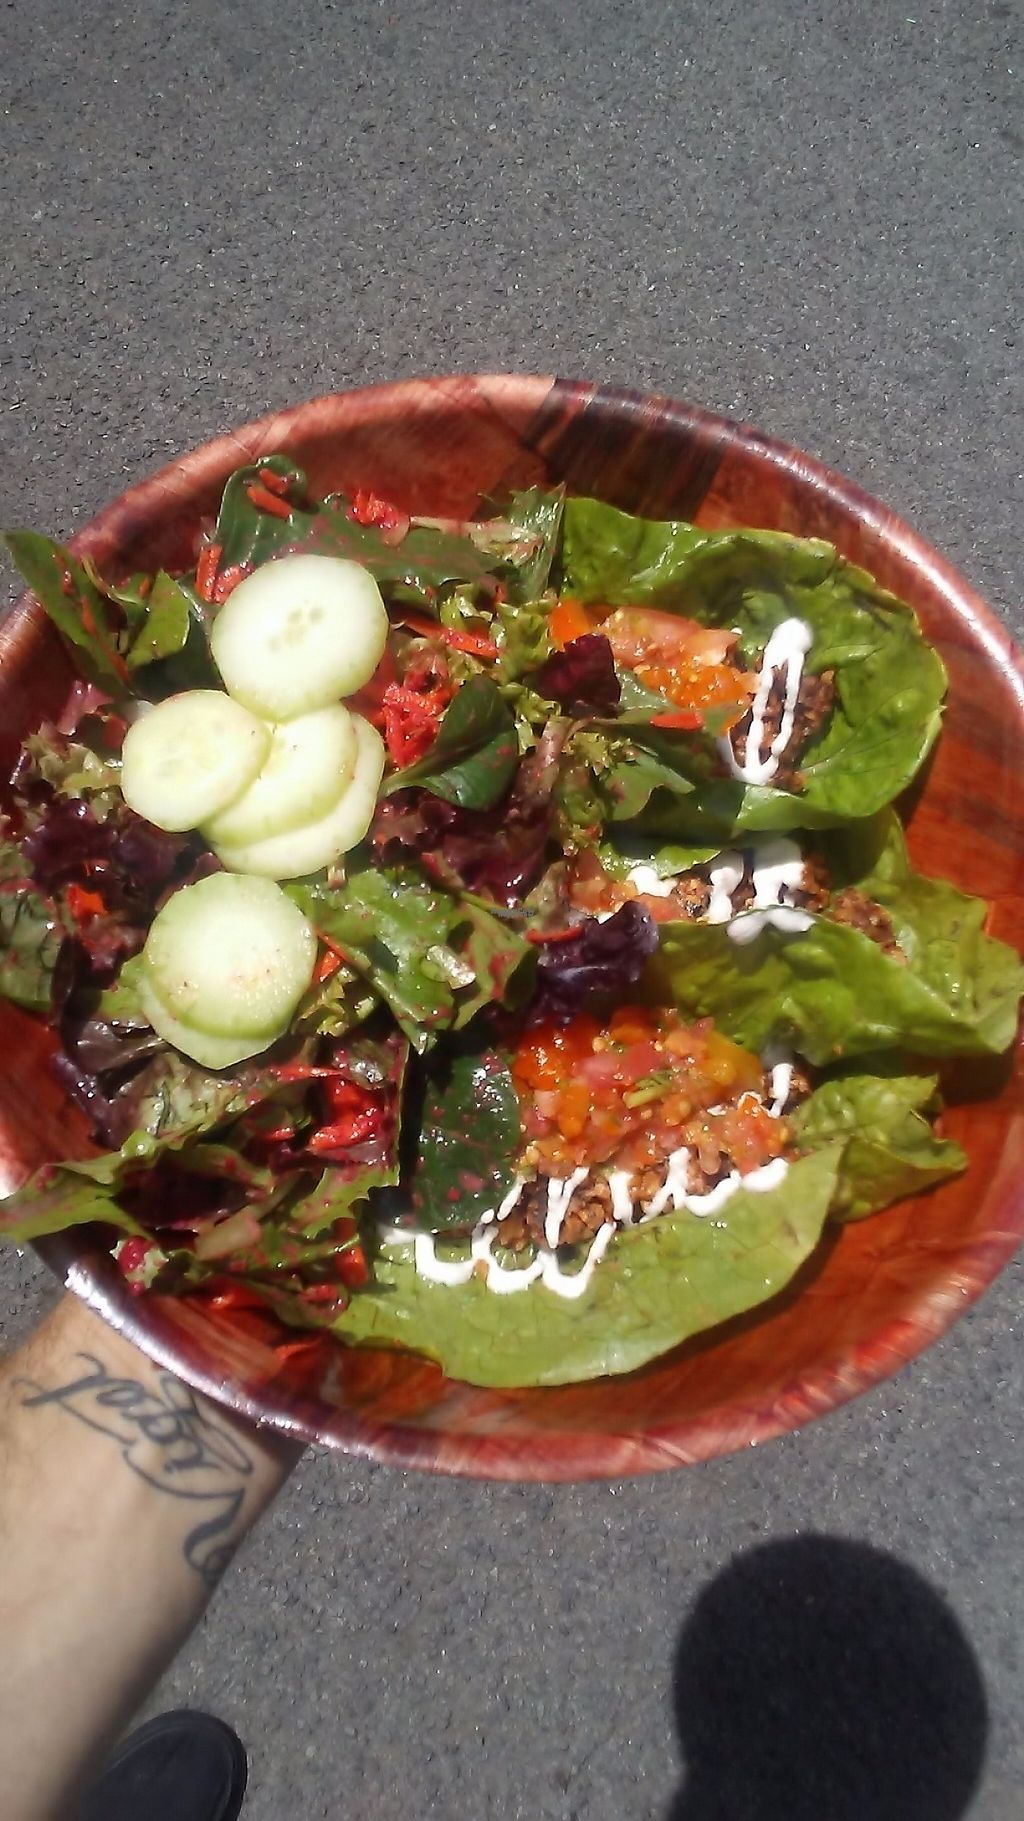 "Photo of Mama T's Ital Kitchen - Umeke Market  by <a href=""/members/profile/DallasMcCulloch"">DallasMcCulloch</a> <br/>Raw tacos! <br/> March 23, 2017  - <a href='/contact/abuse/image/71398/239691'>Report</a>"